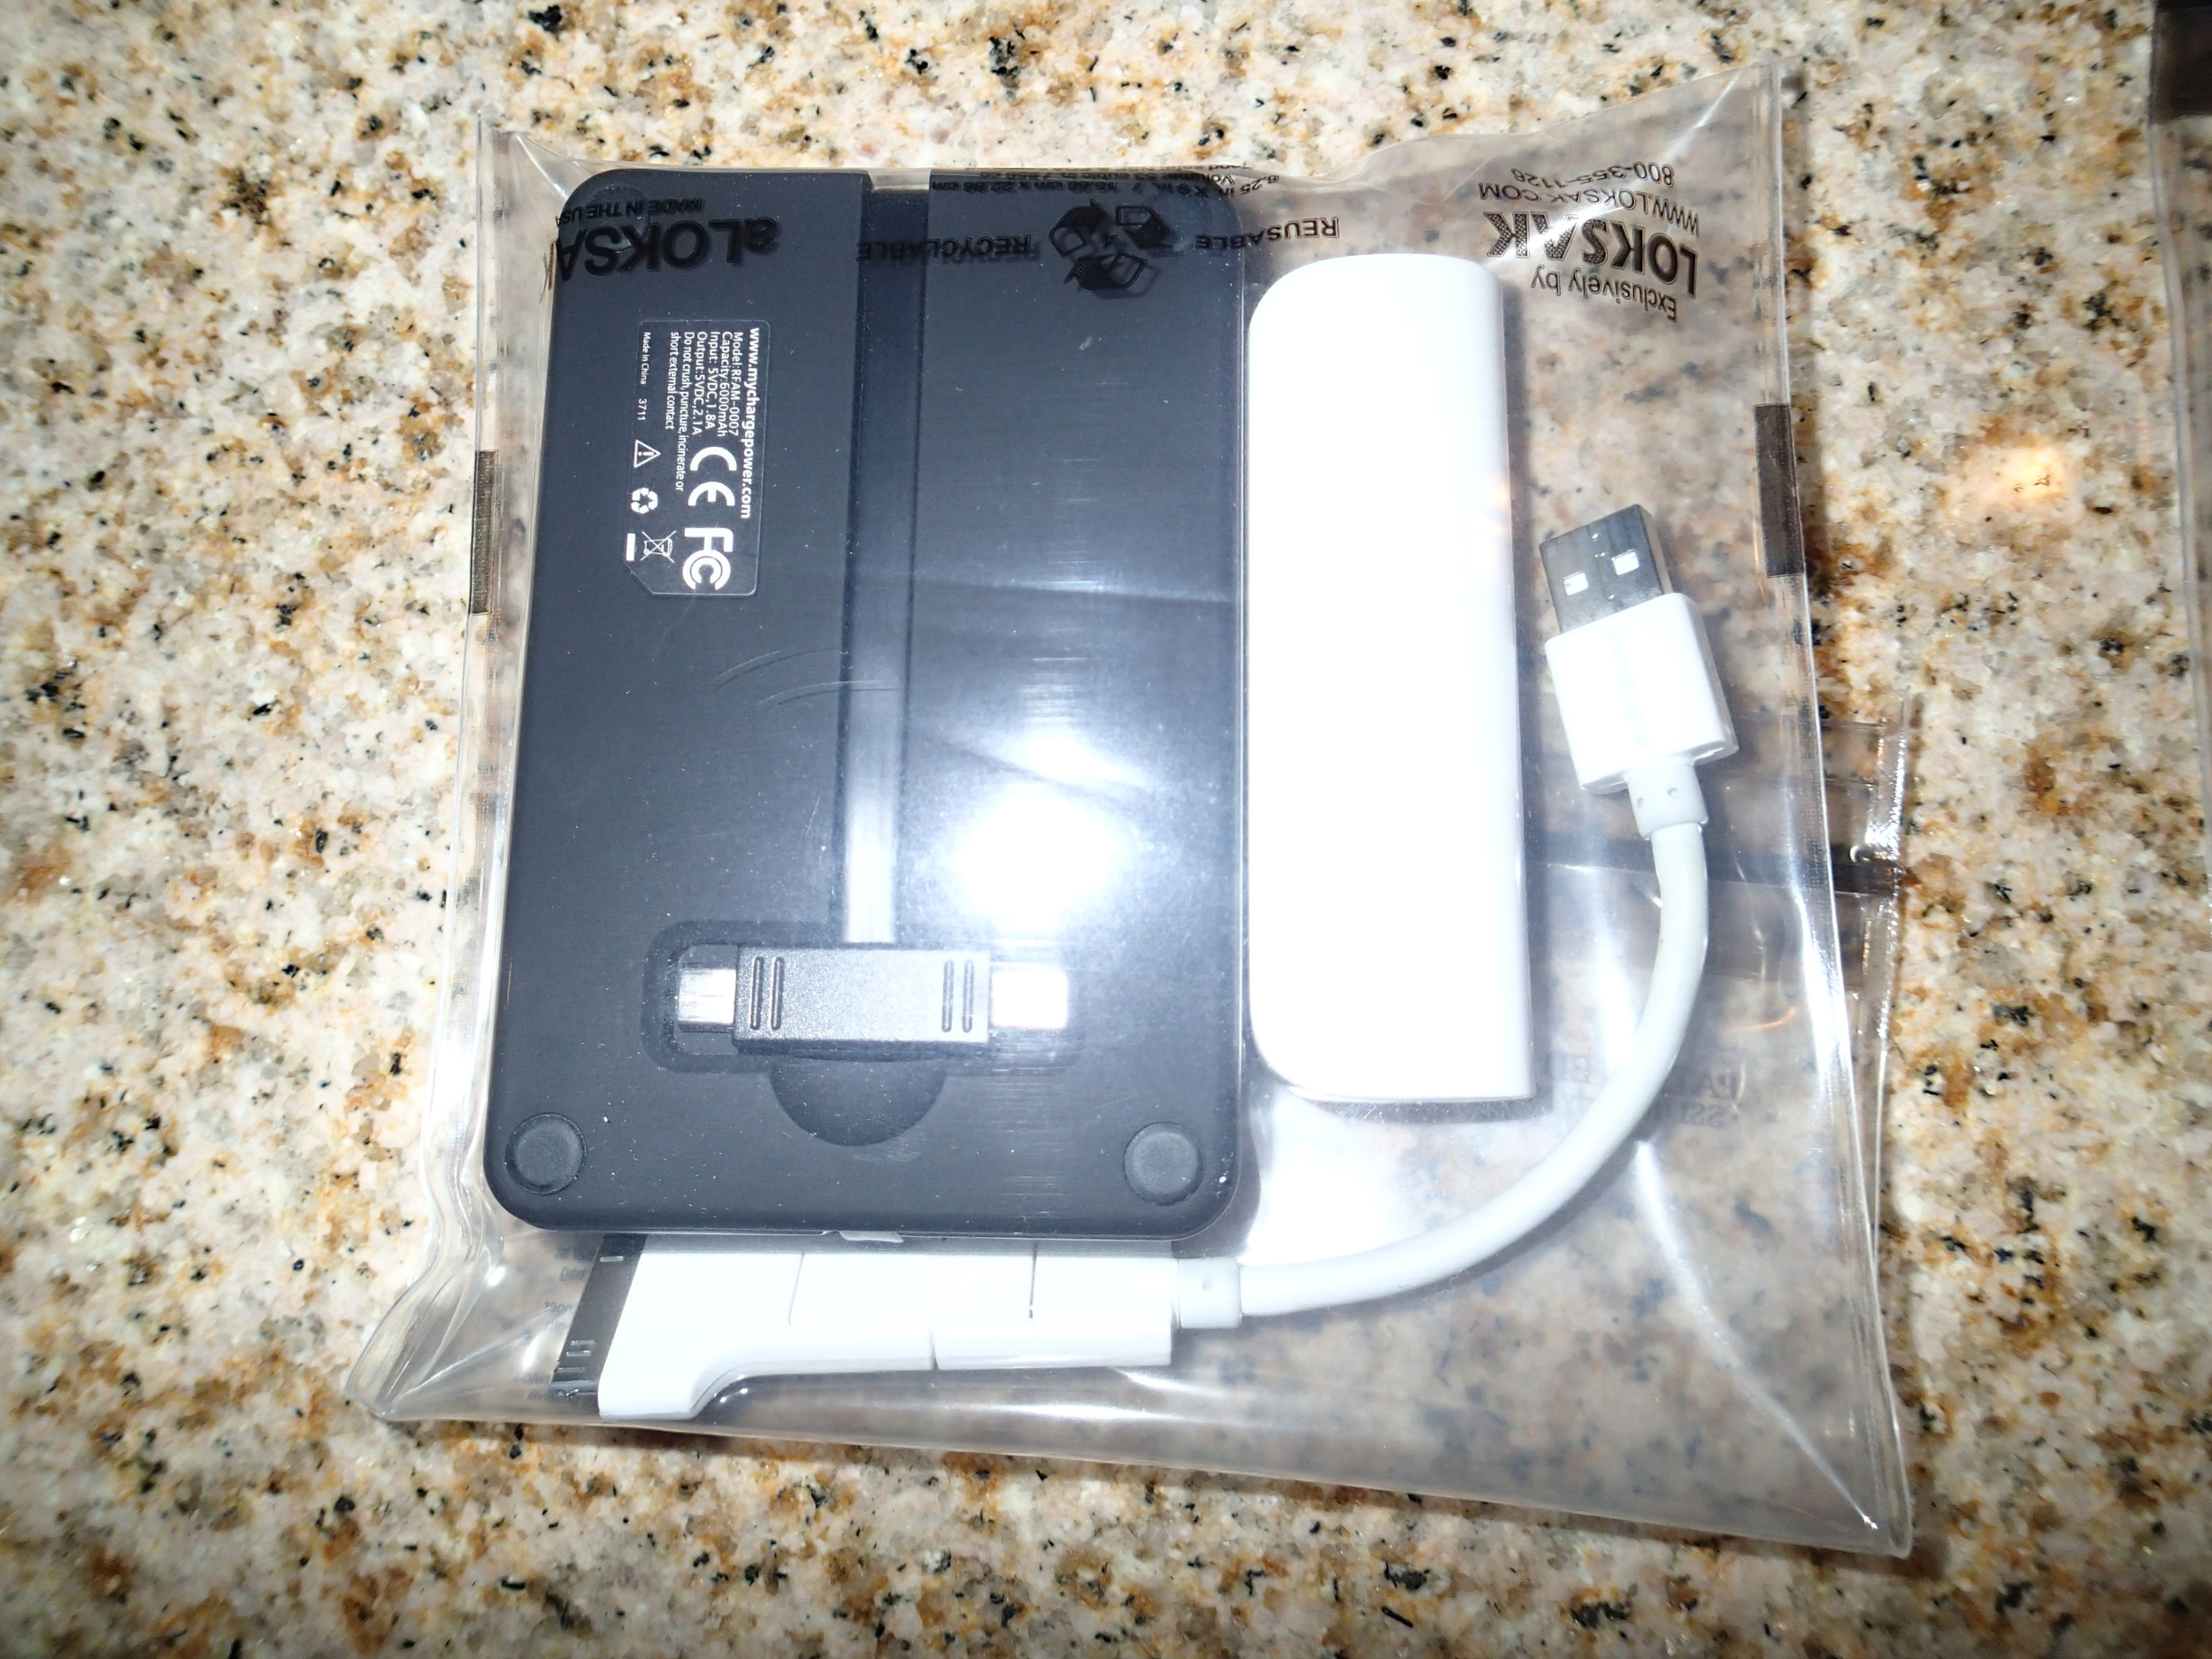 LokSak storing an Innergie PocketCell 3000mAh battery and MyCharge battery pack